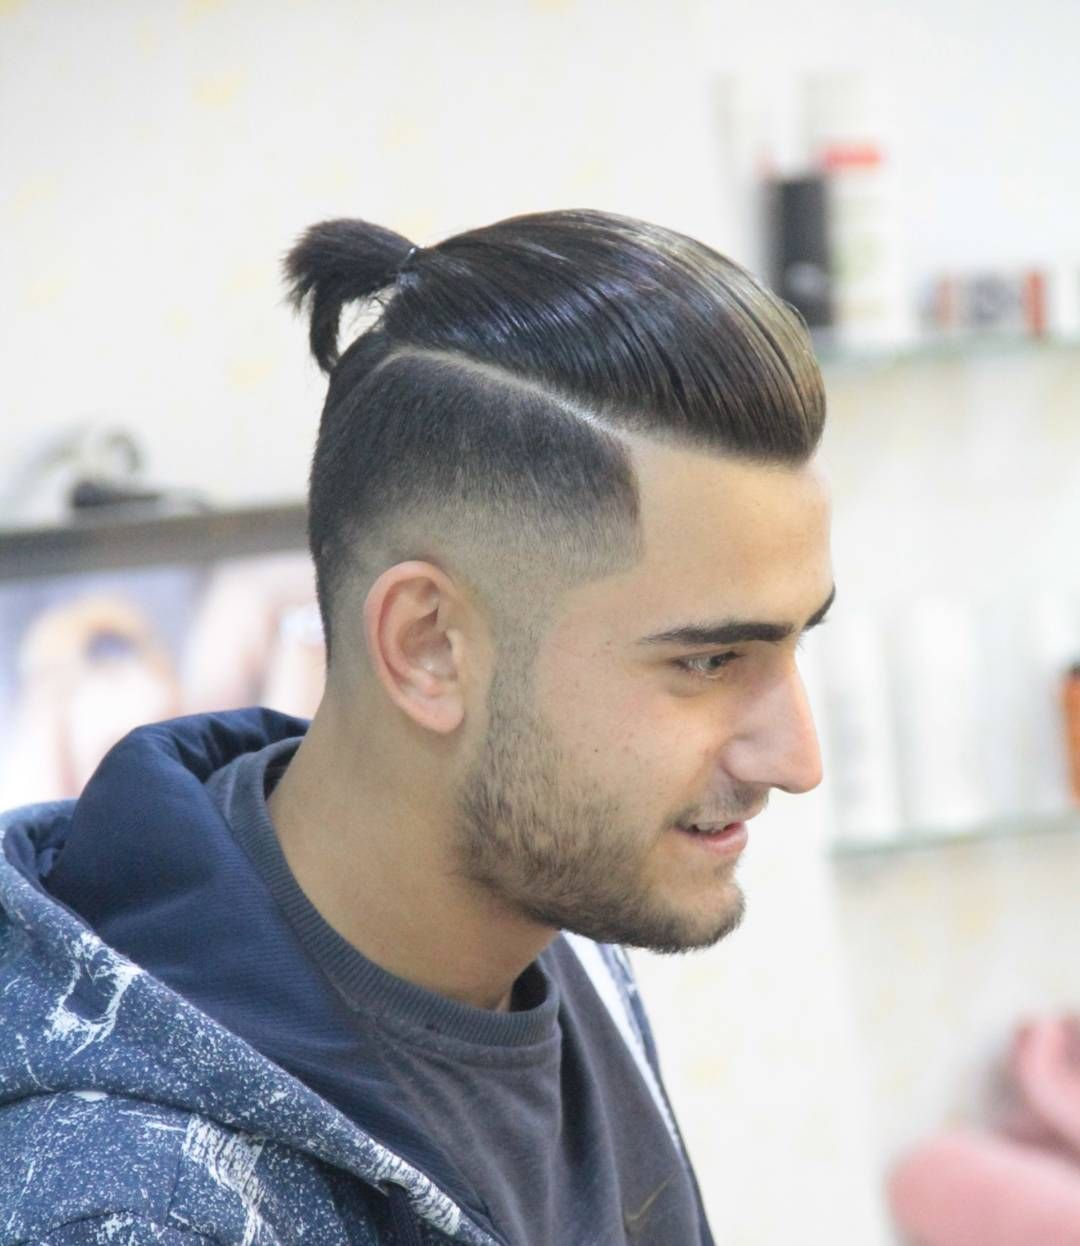 20 popular disconnected undercuts hairstyles for men - men